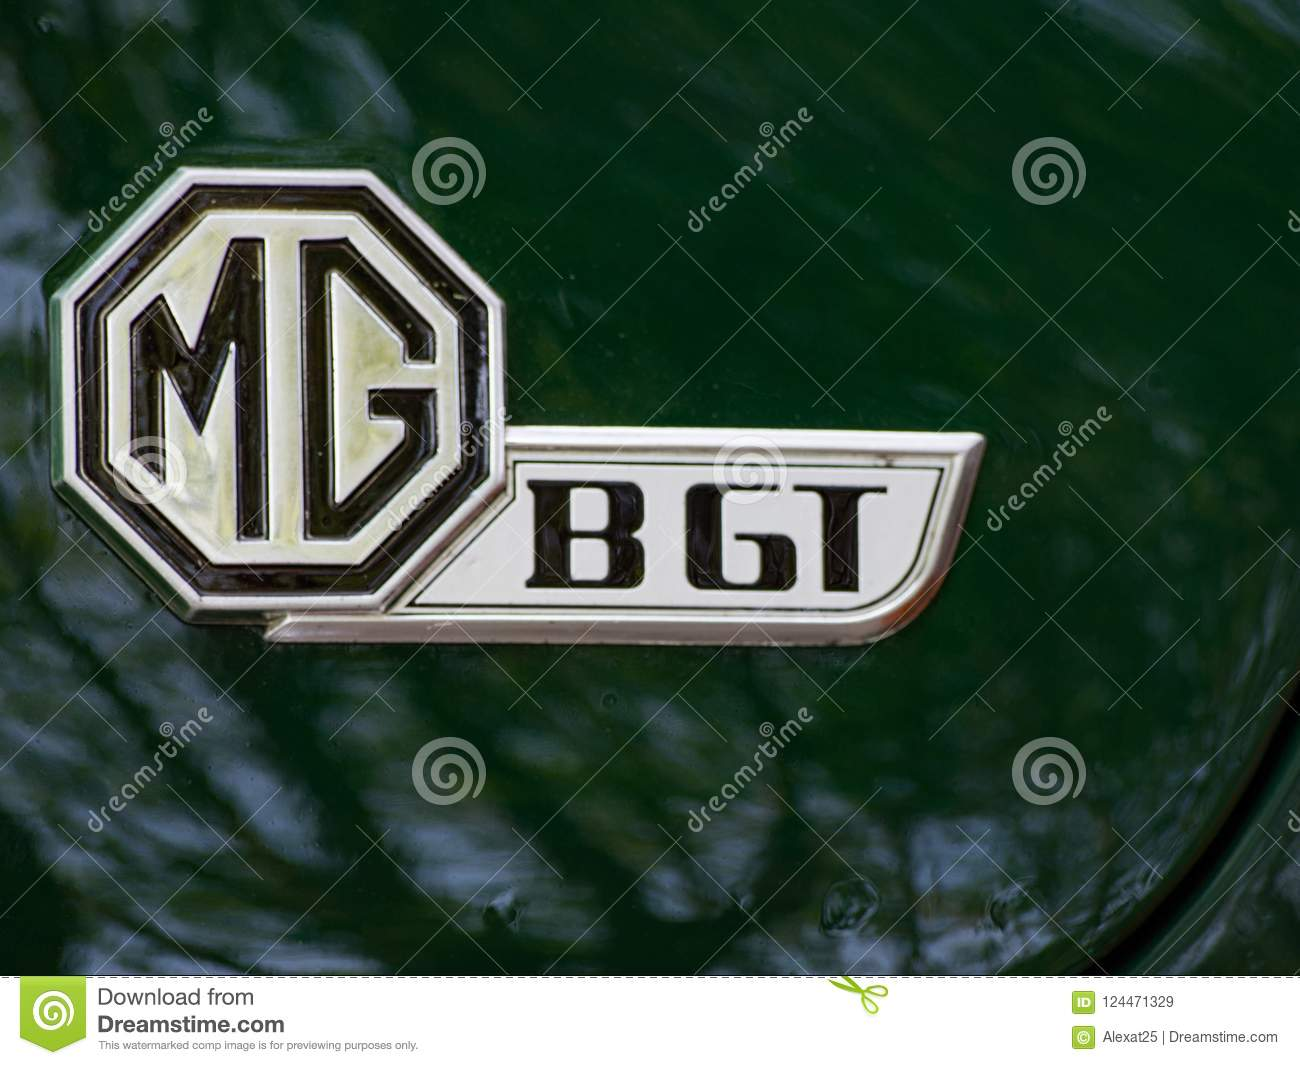 Ares Spain Emblem Of Vintage Mg Bgt Car Editorial Stock Image Image Of Machine Exhibition 124471329